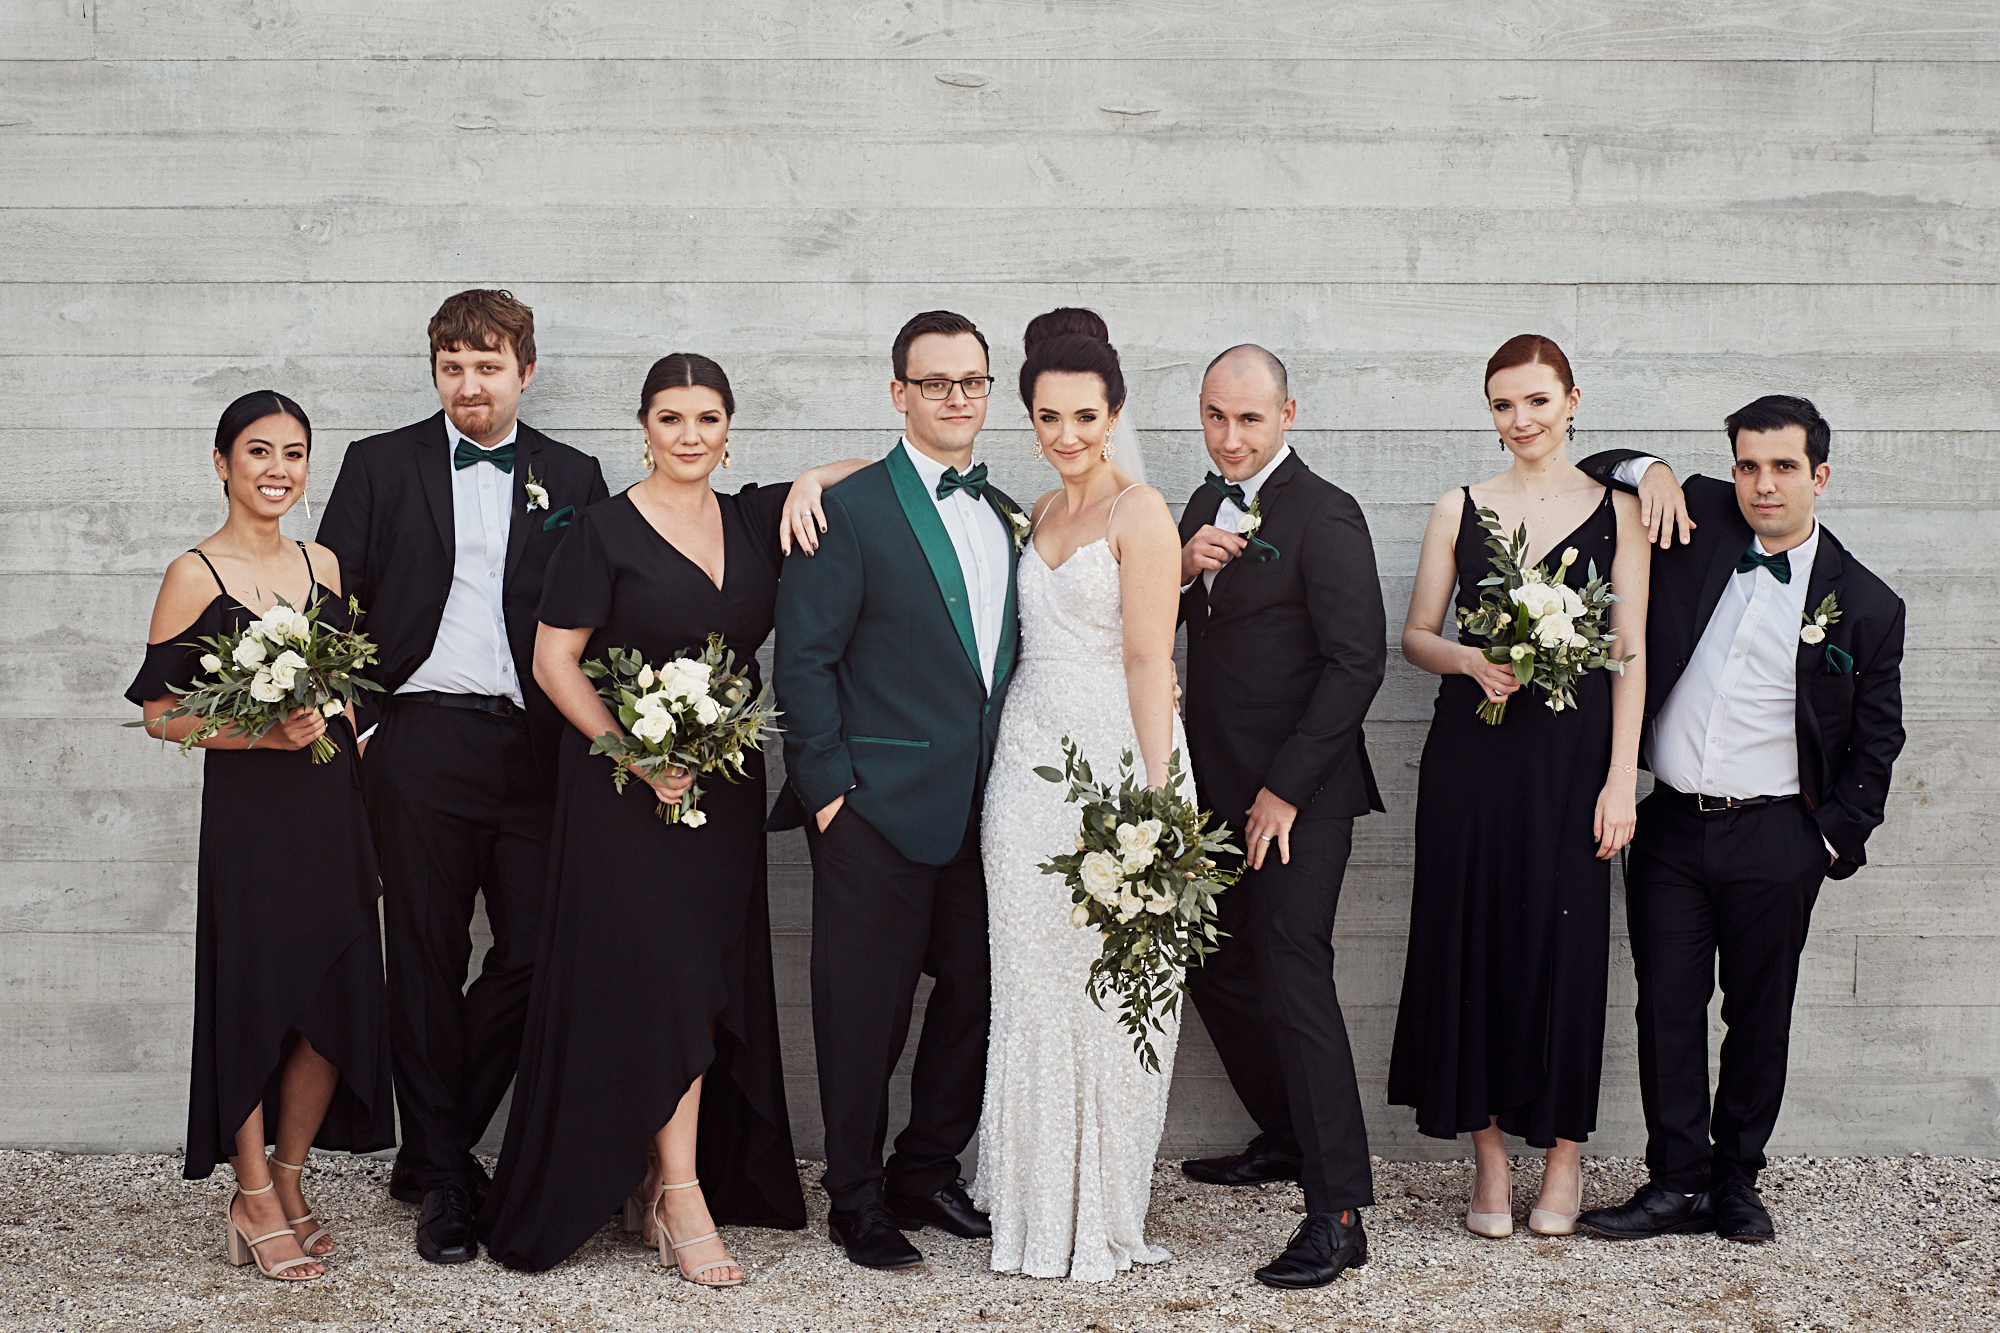 Bridal party posing for photographer